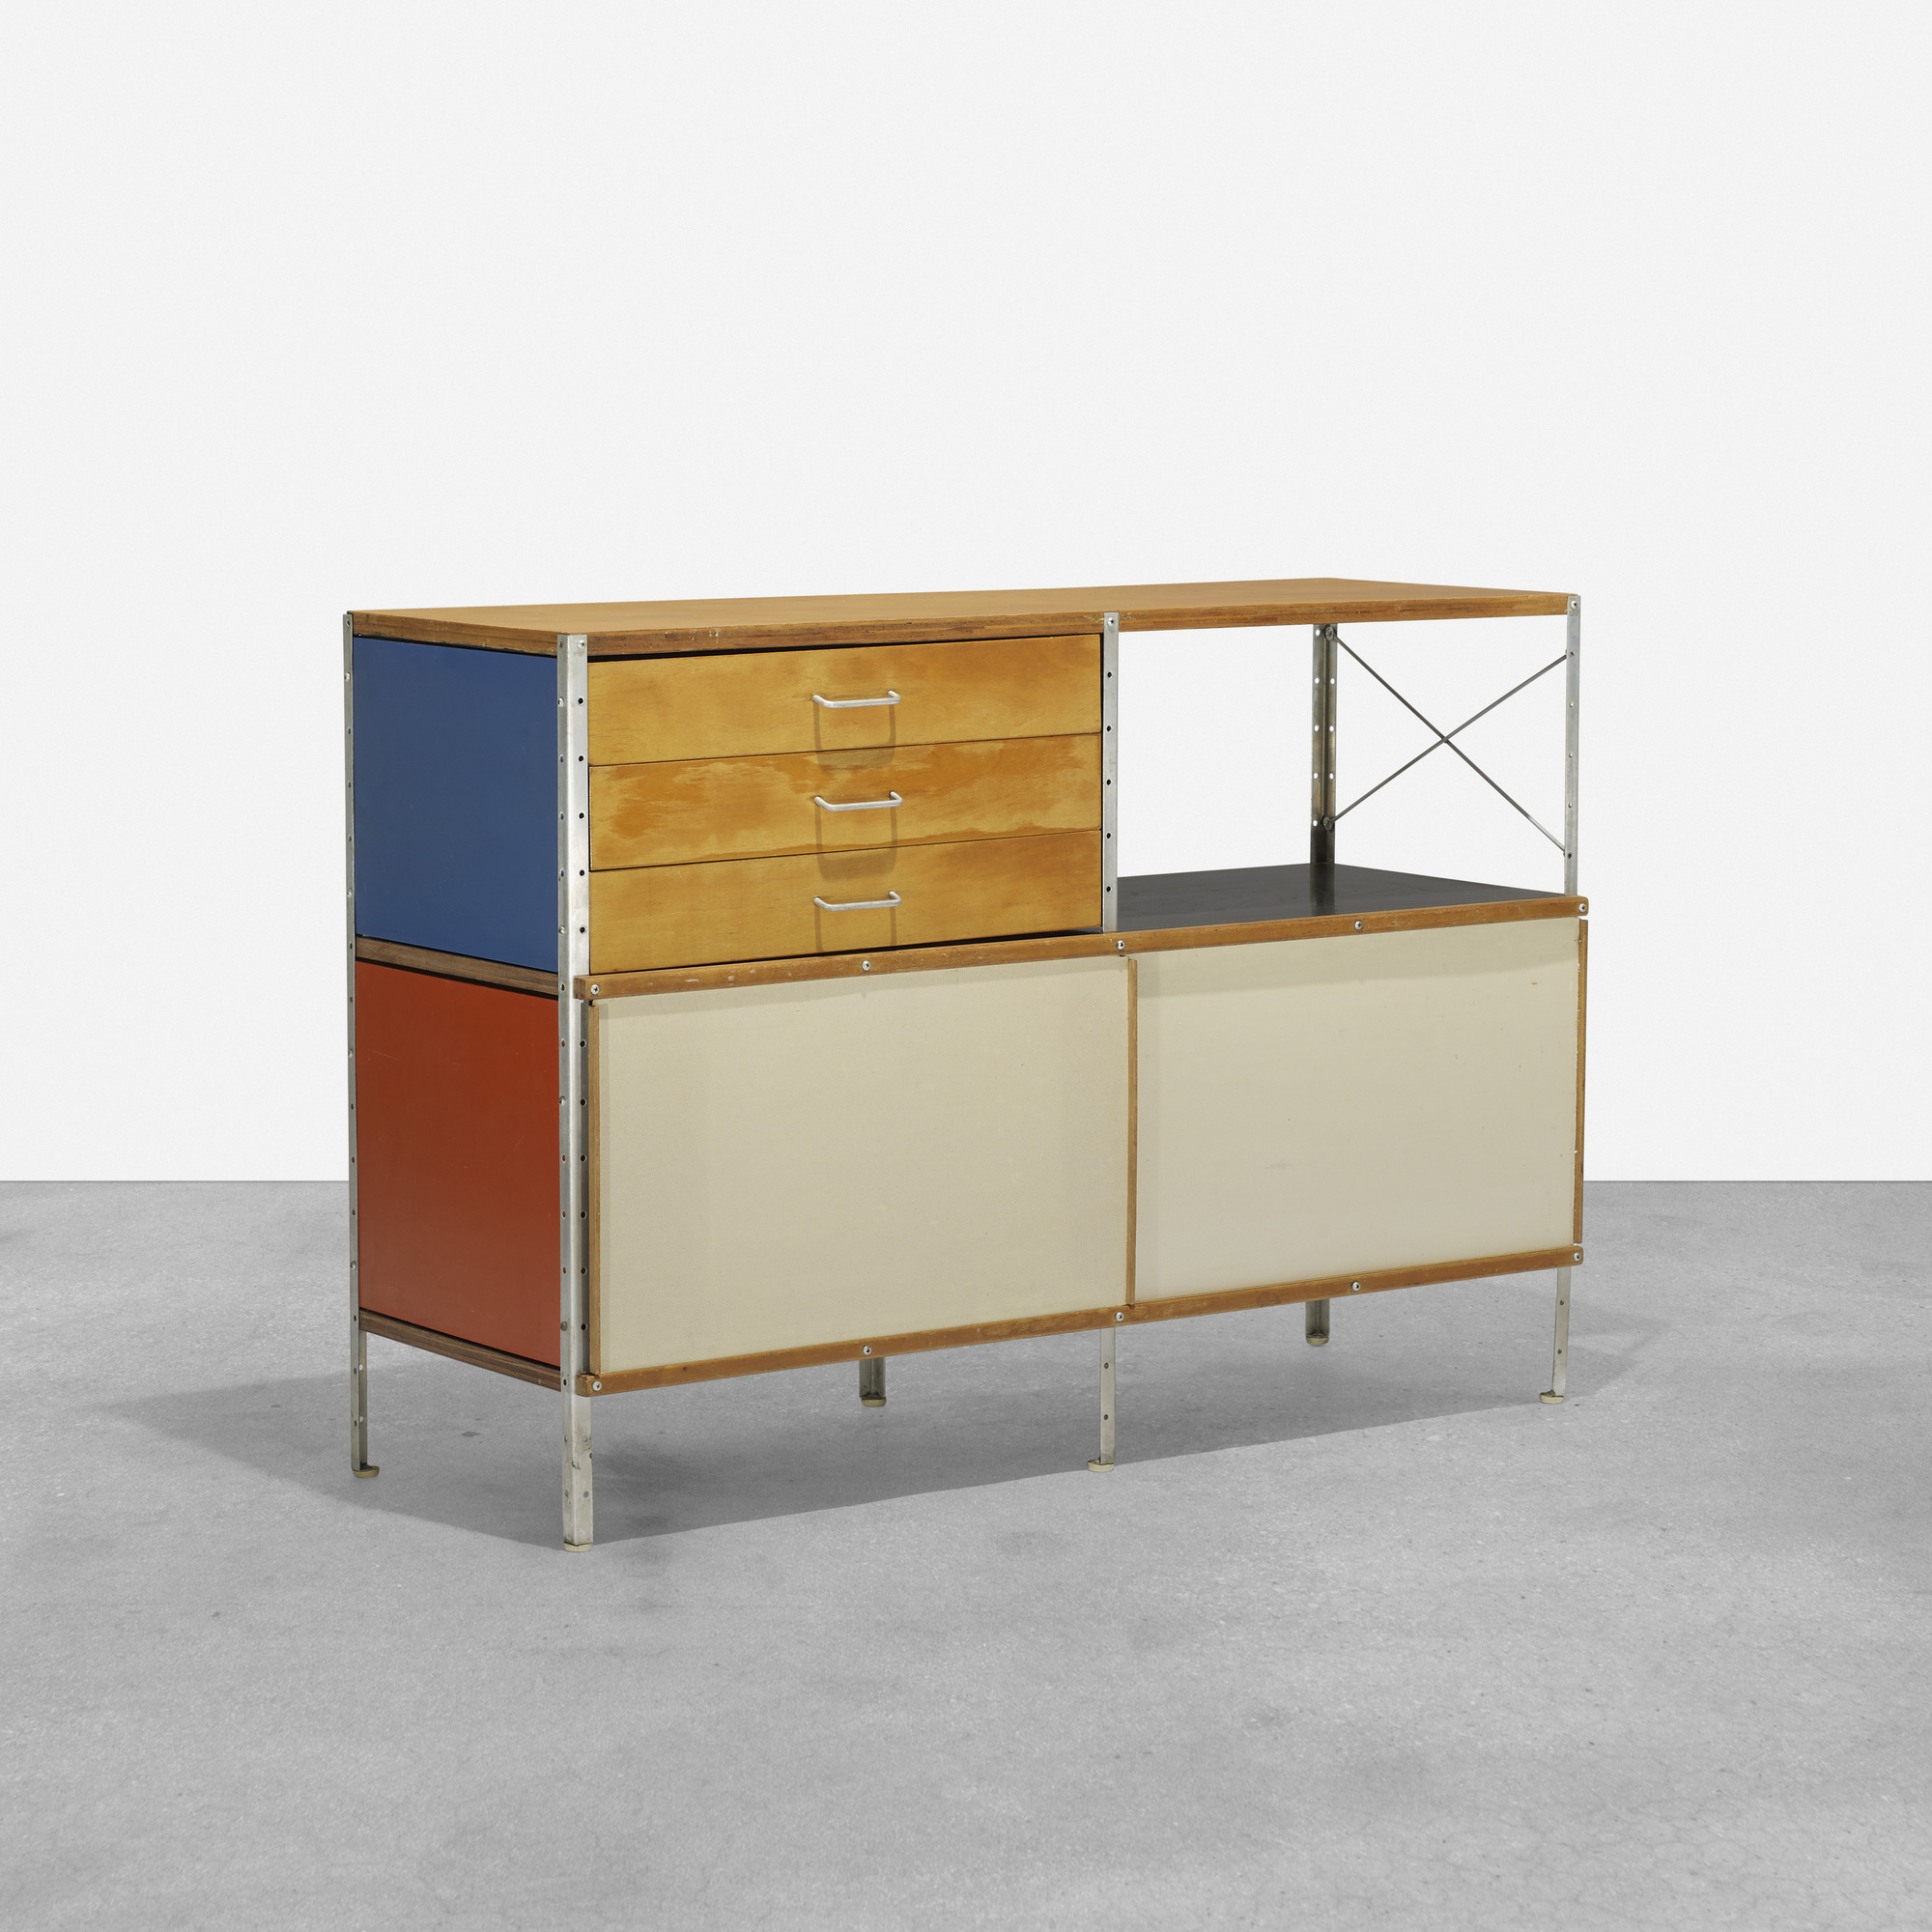 342: Charles and Ray Eames / ESU 200-C (1 of 4)